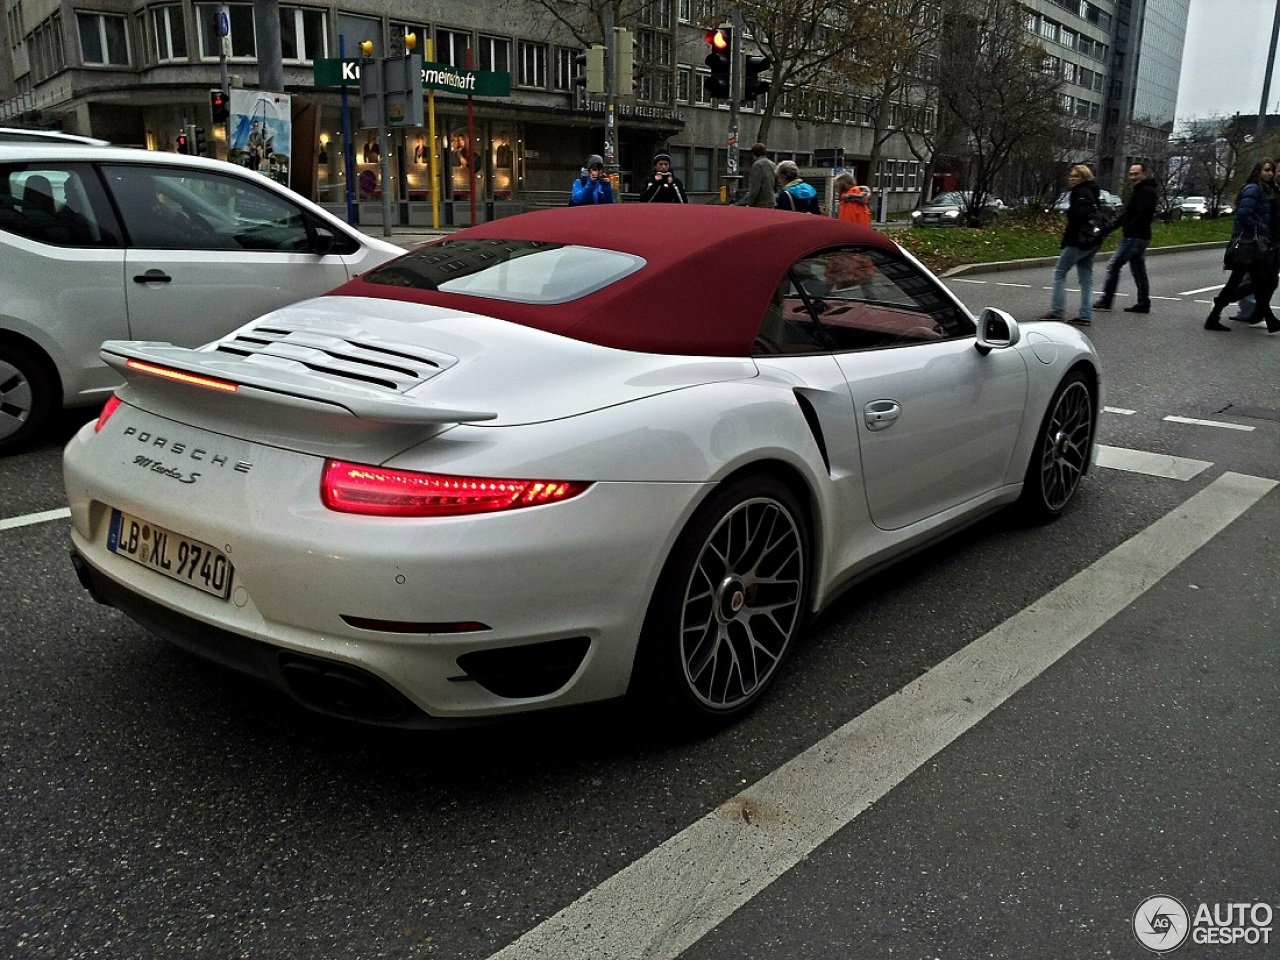 Porsche 991 Turbo S Cabriolet 17 November 2013 Autogespot